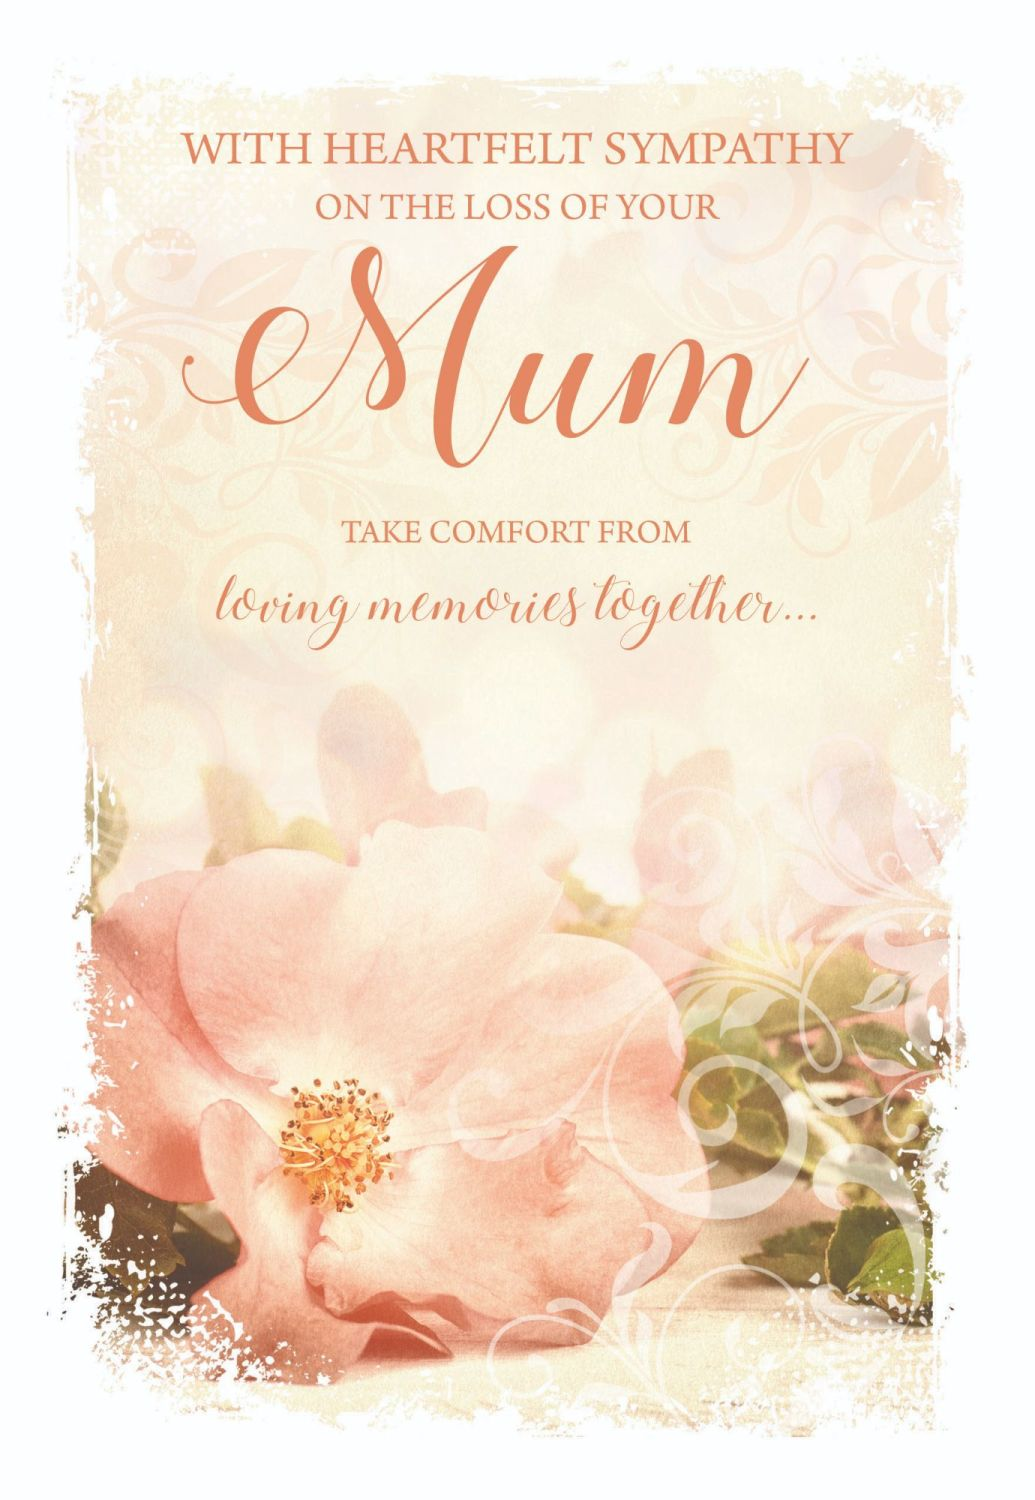 Mum Sympathy Cards - TAKE Comfort From LOVING Memories TOGETHER - Loss Of M